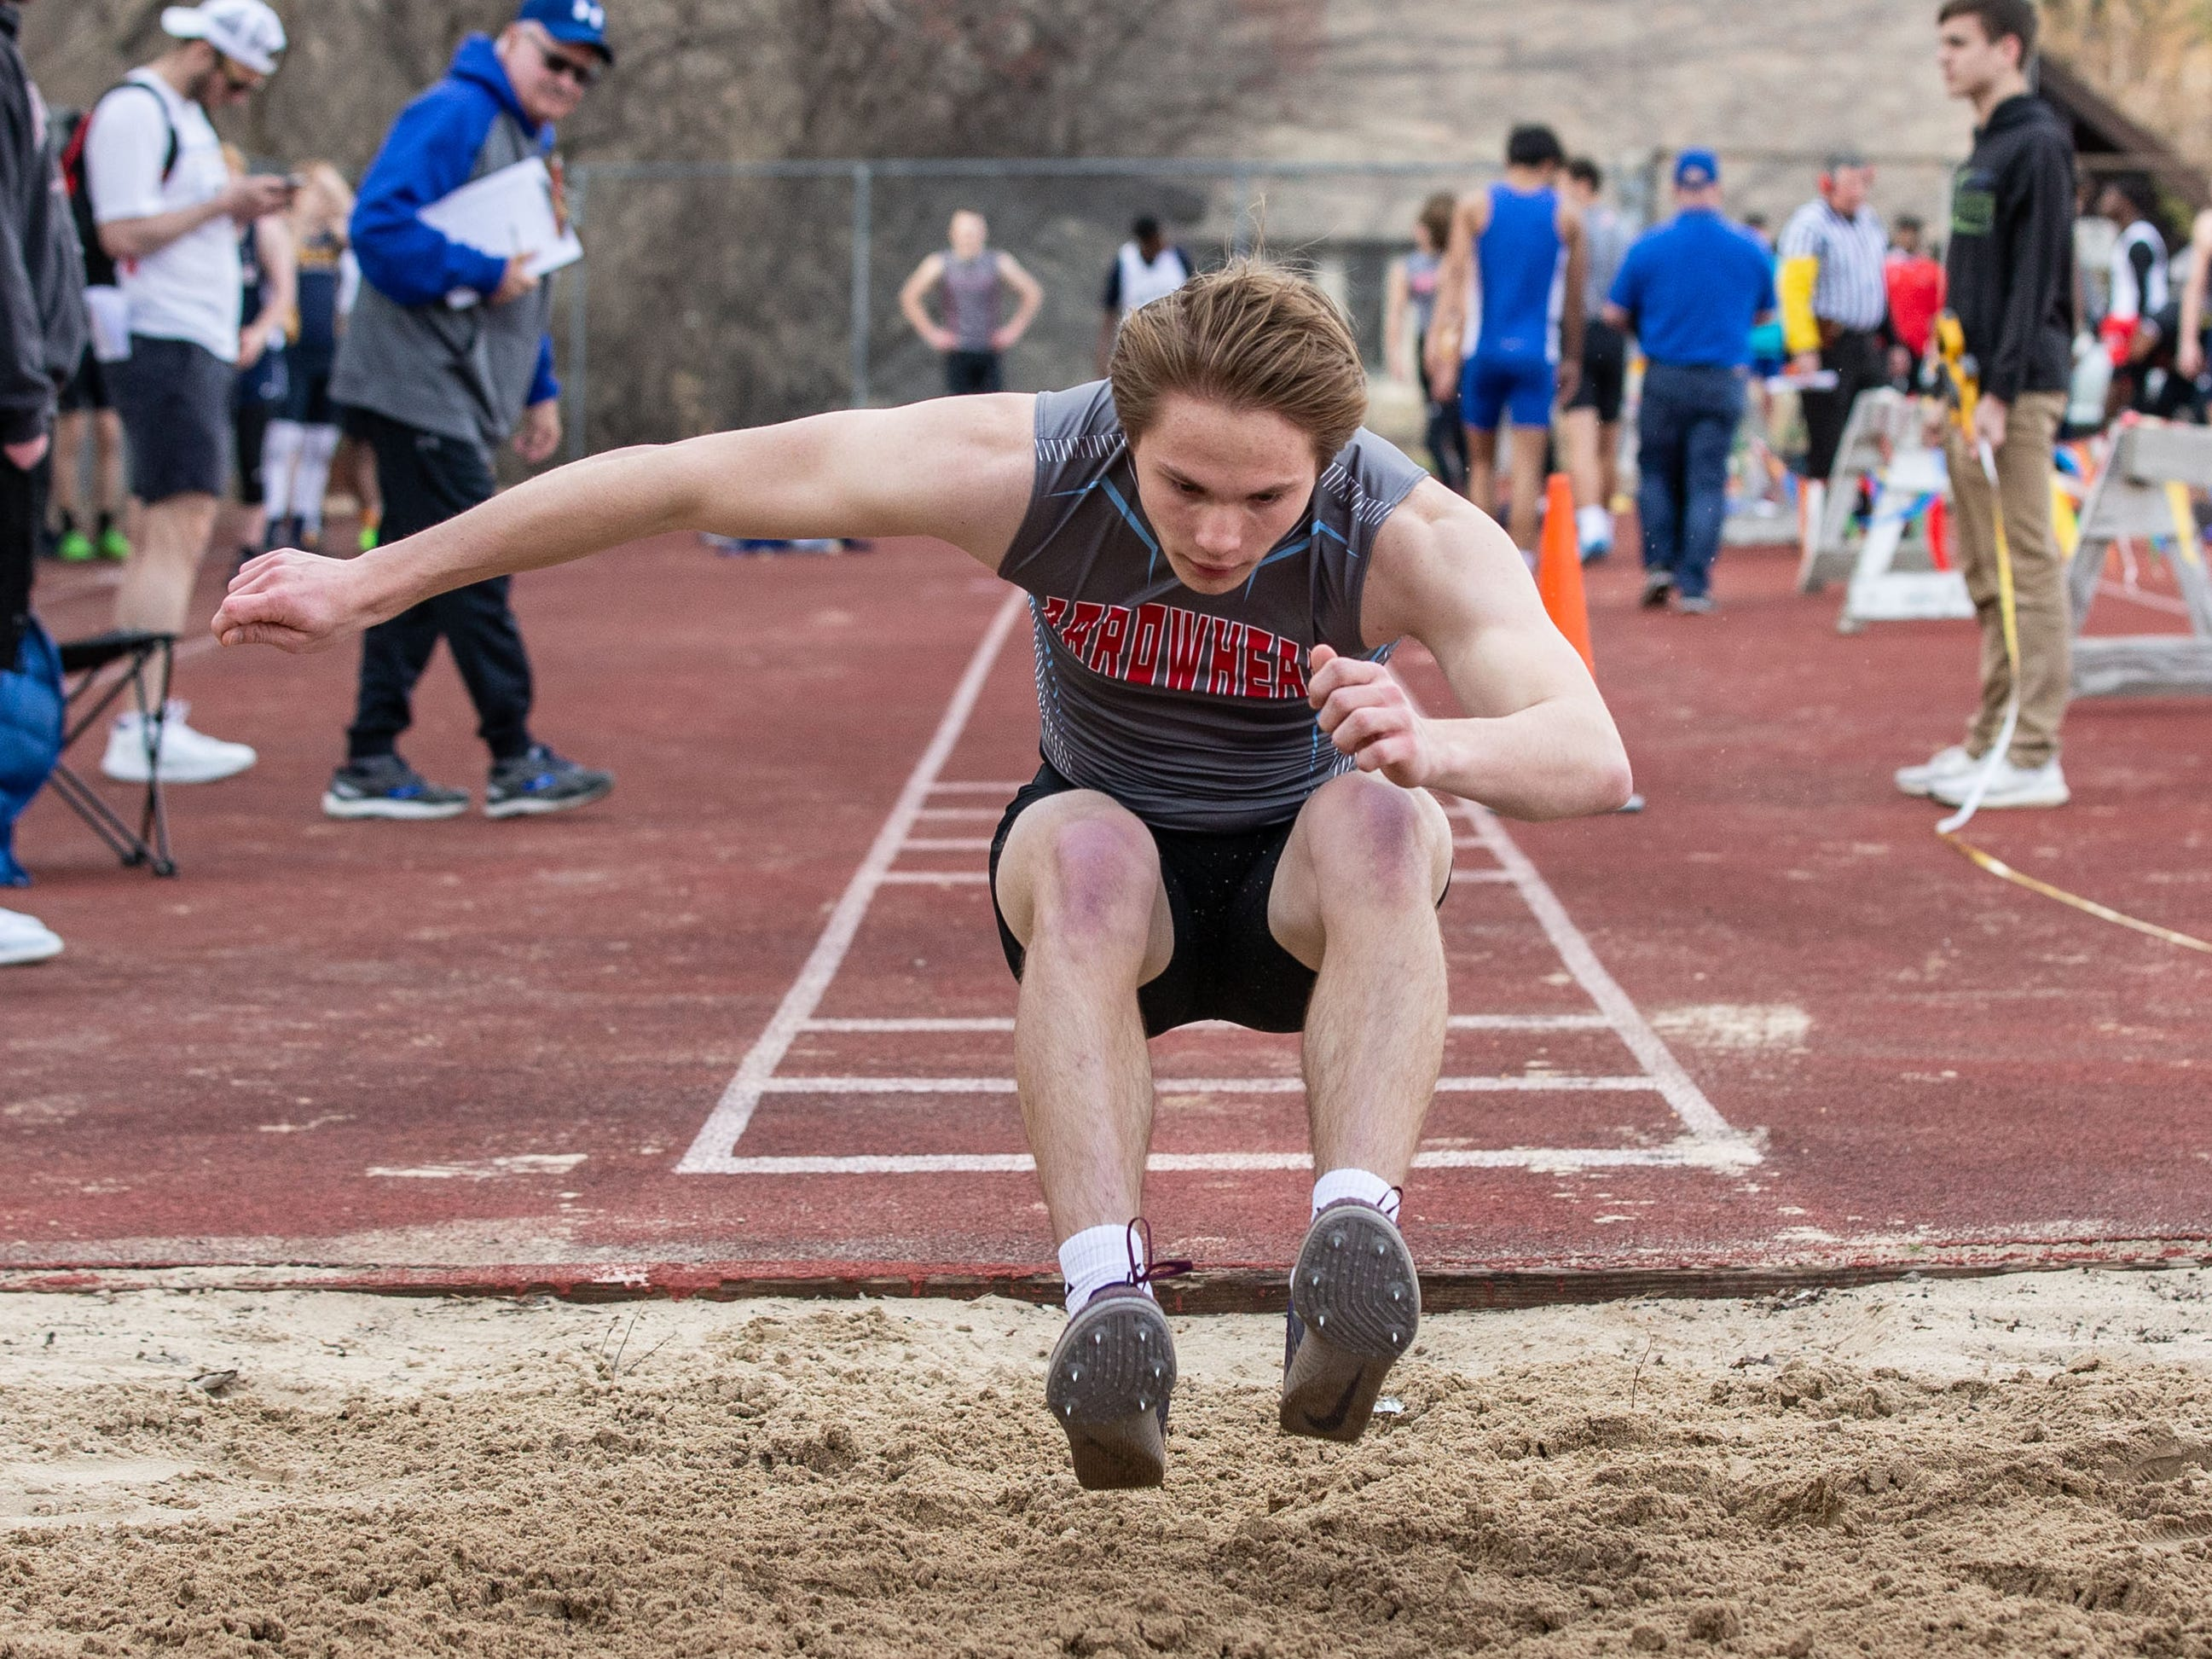 Arrowhead's Ryan Burchett competes in the triple jump during the Mike Gain 50th Annual Spartan Invitational at Brookfield East on Tuesday, April 9, 2019. Burchett placed second with a jump of 39-00.75.